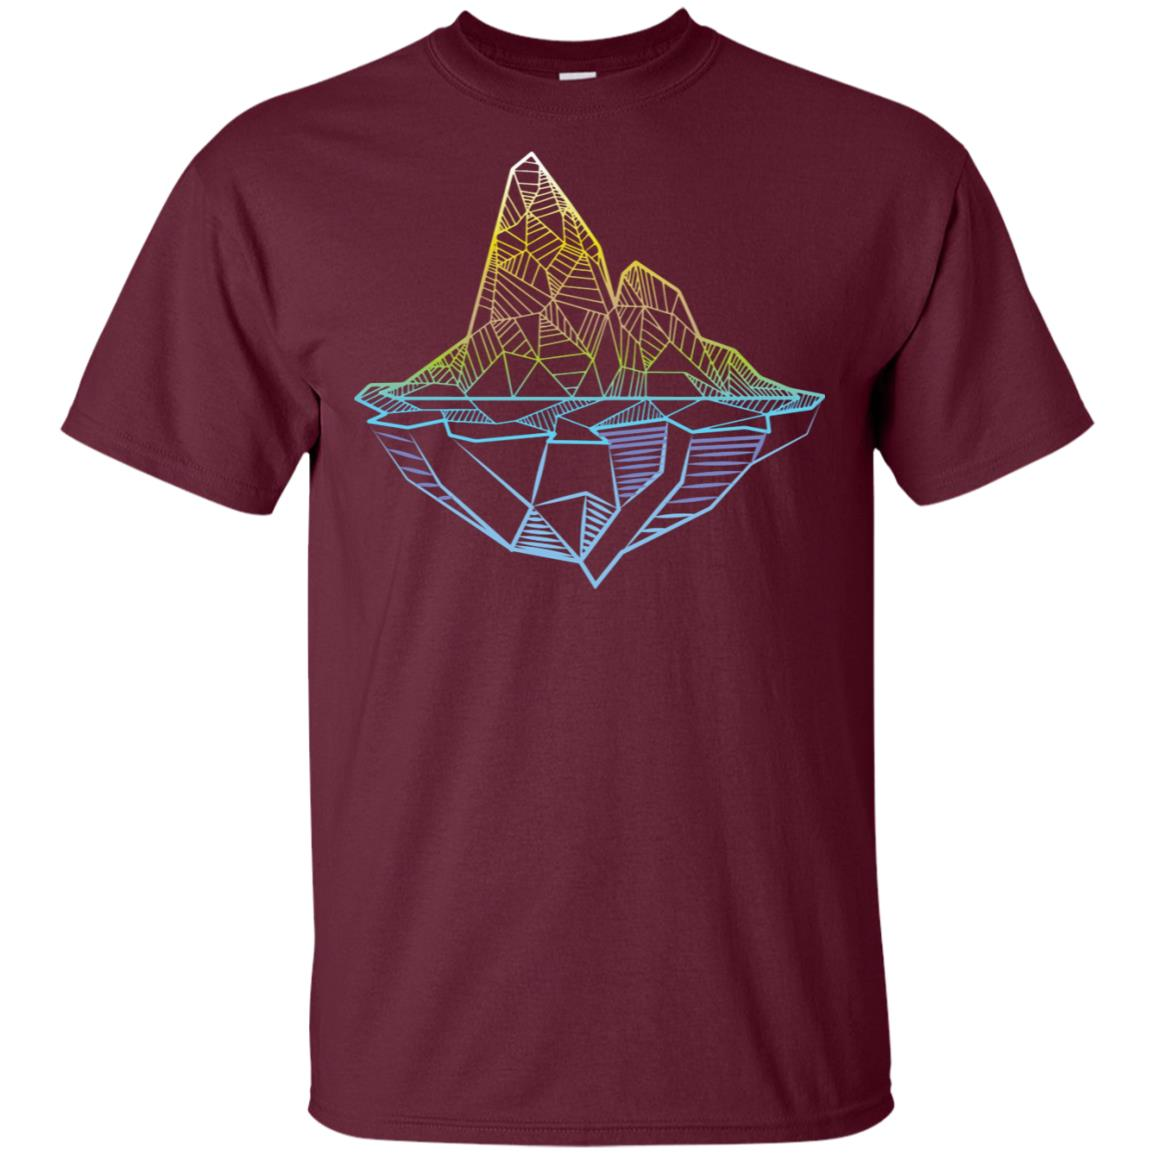 Minimal Mountains Geometry Art Hiking Outdoor Unisex Short Sleeve